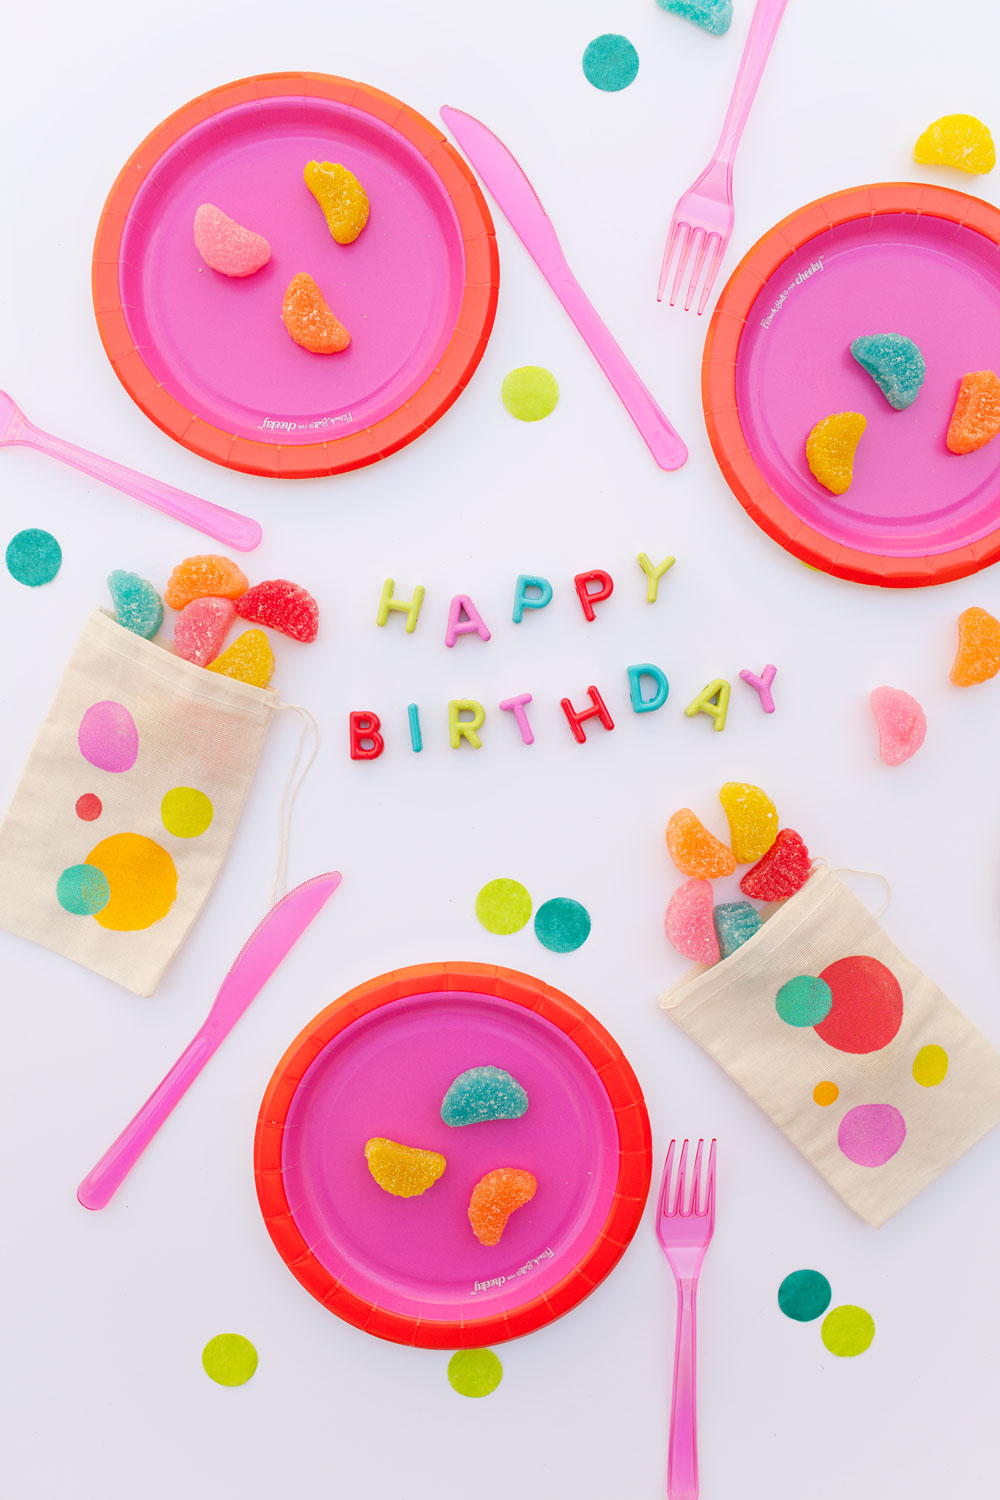 _A-colorful-birthday-party-idea